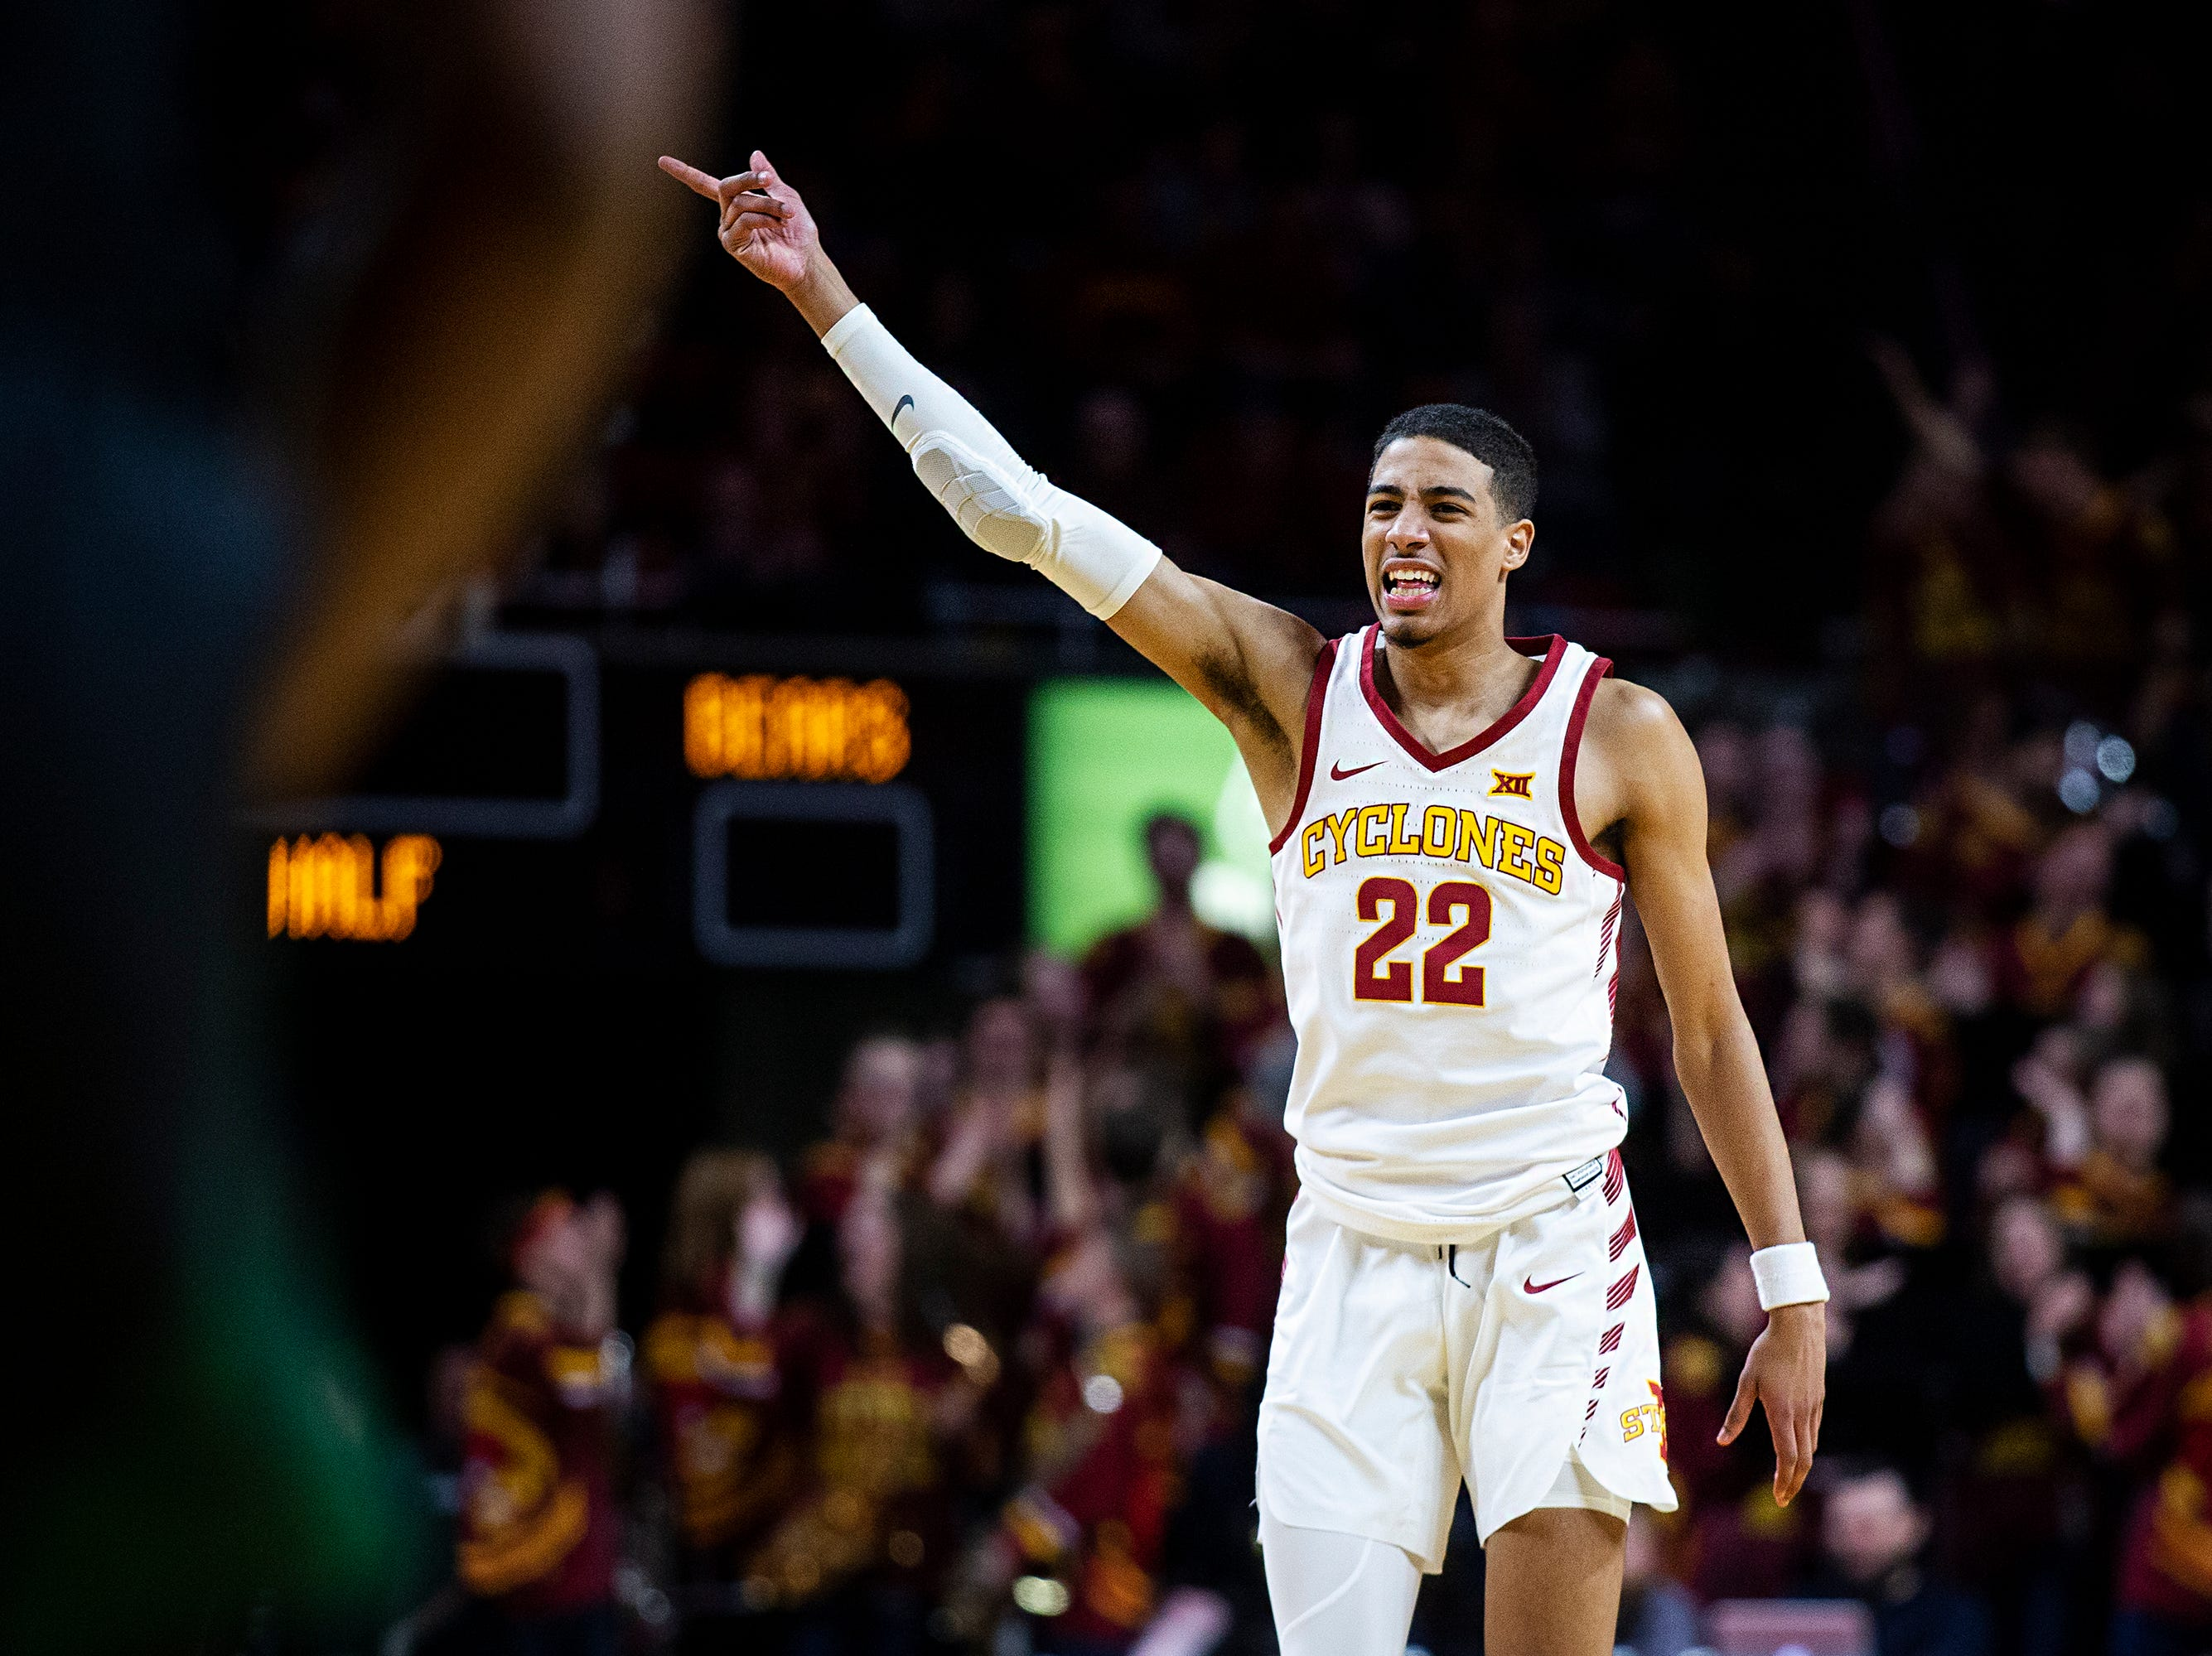 Iowa State's Tyrese Haliburton celebrates after scoring during the Iowa State men's basketball game against Baylor on Tuesday, Feb. 19, 2019, in Hilton Coliseum. The Cyclones fell to the Bears 69-73.